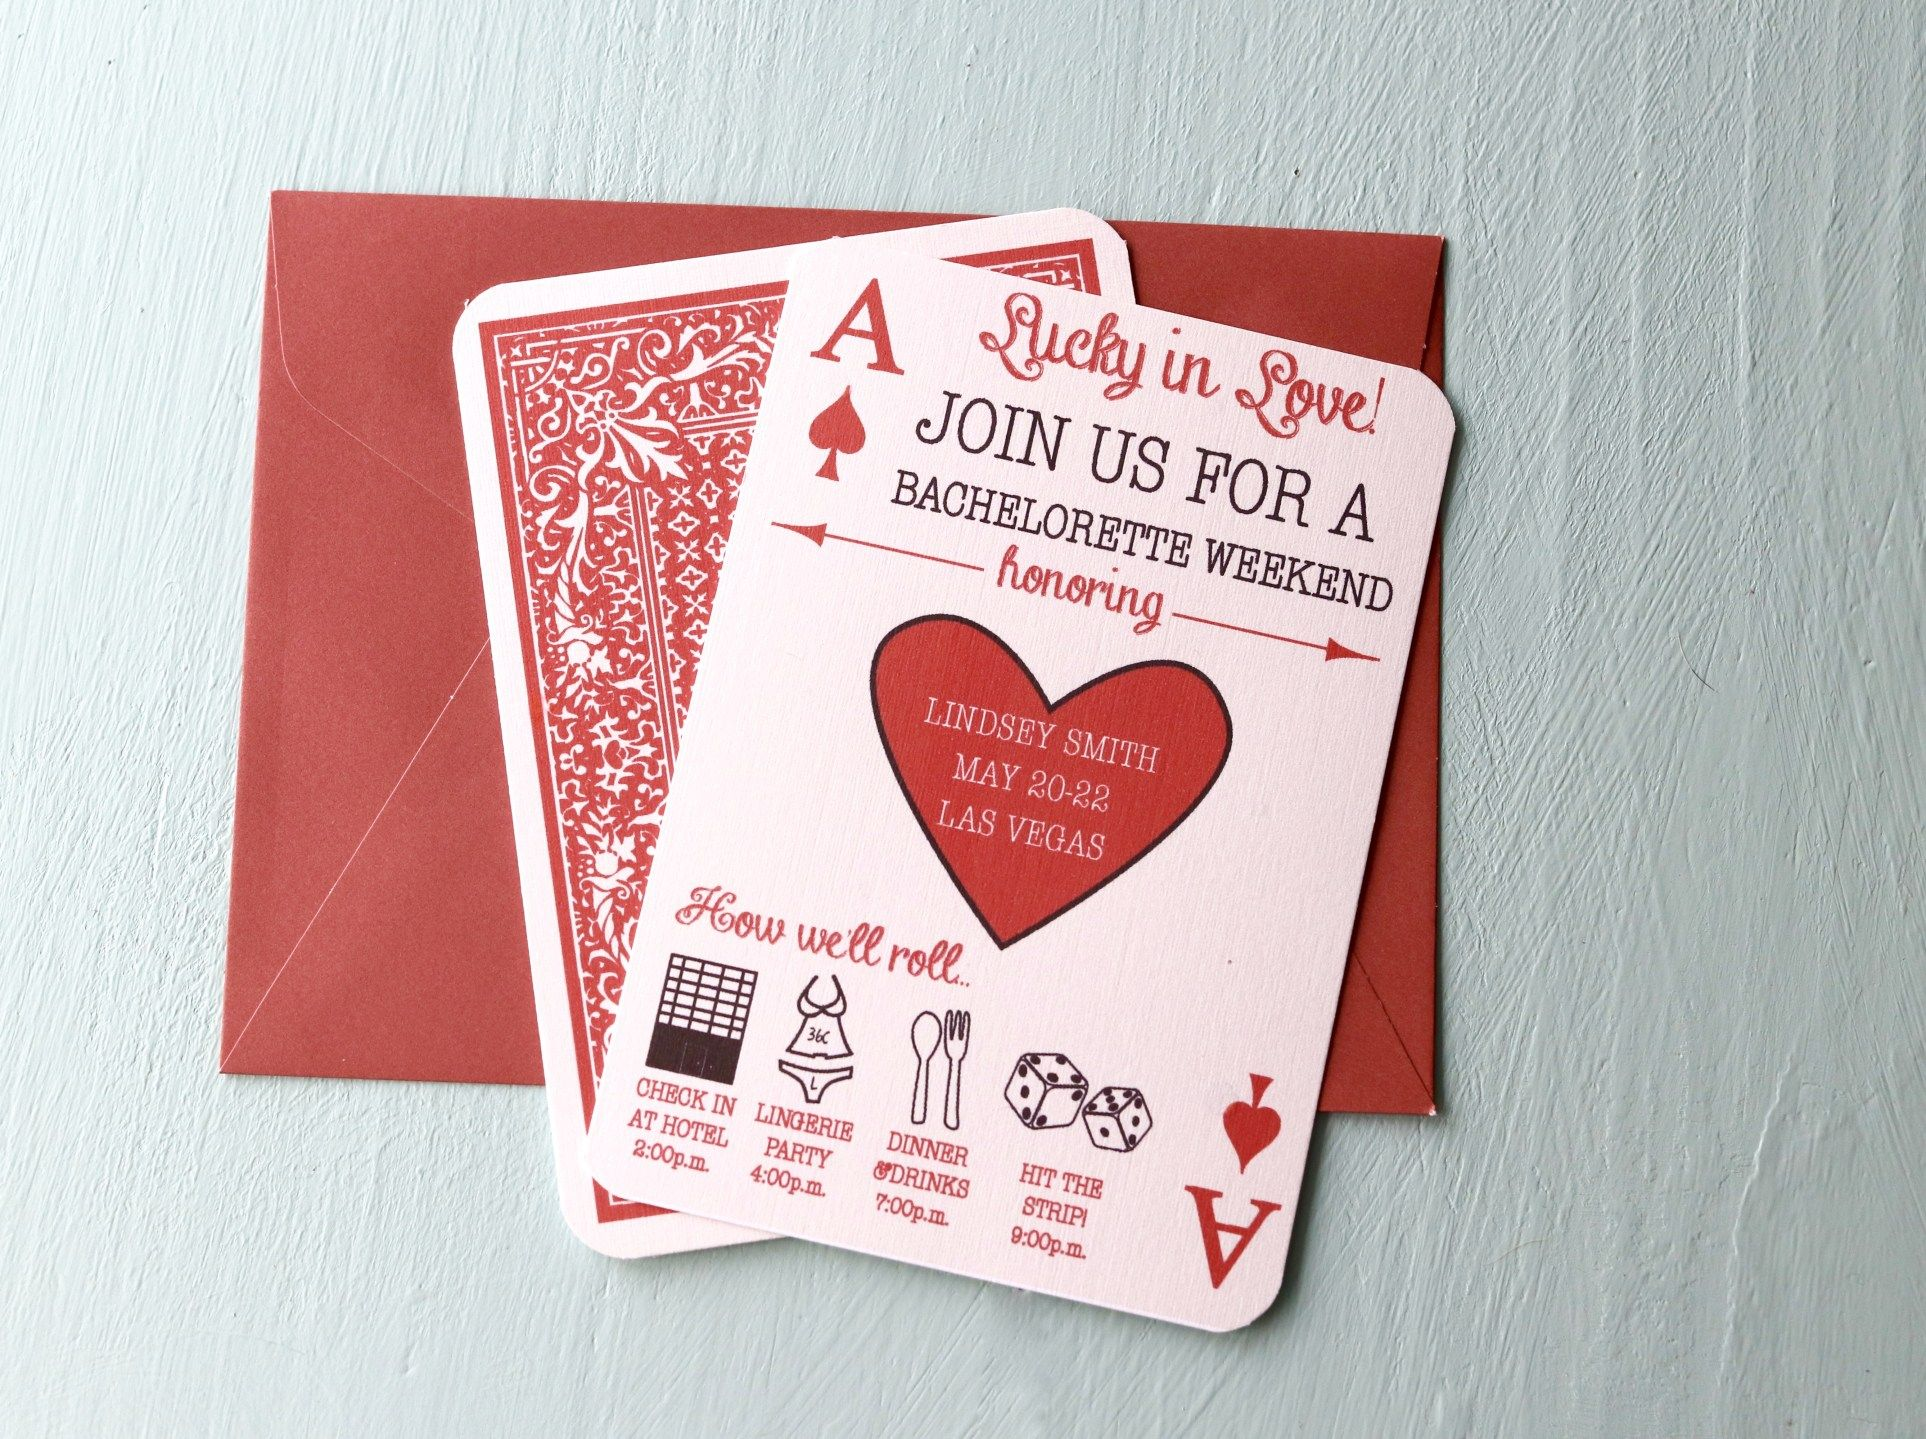 Non-Traditional Bridal Showers: 6 New Invitation Ideas -   Matching ...